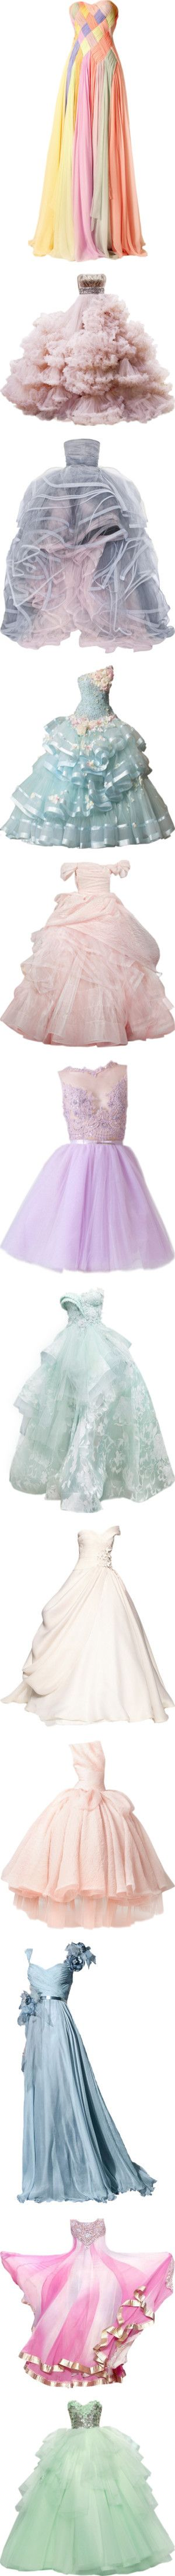 candy coated couture by missherjh on Polyvore featuring women's fashion, dresses, gowns, long dresses, vestidos, couture evening gowns, couture evening dresses, couture gowns, couture dresses and red carpet long dresses